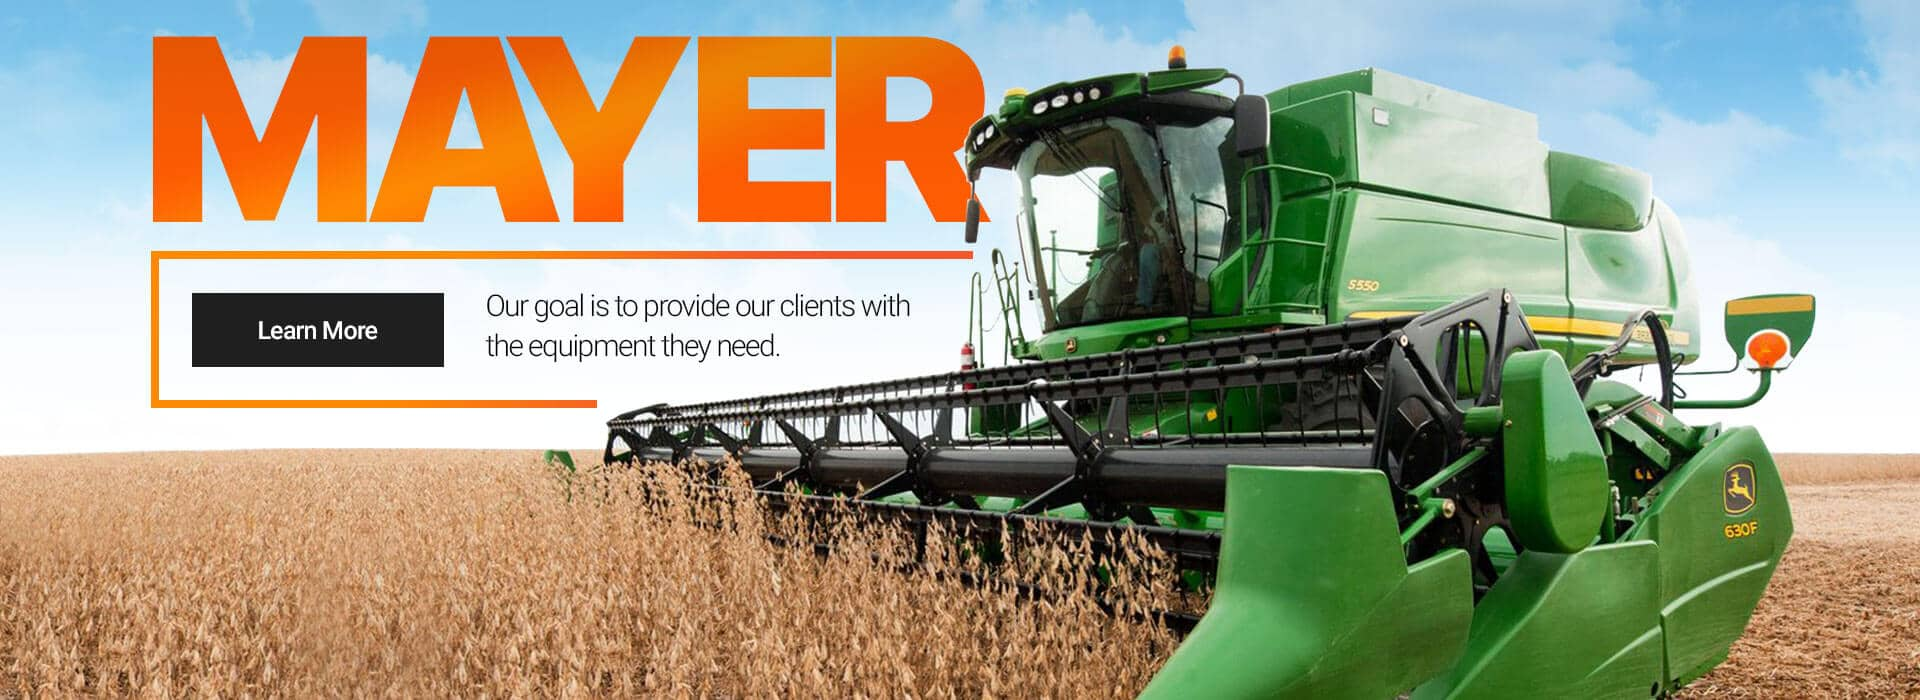 Mayer Agri Equipment - Read more About Us